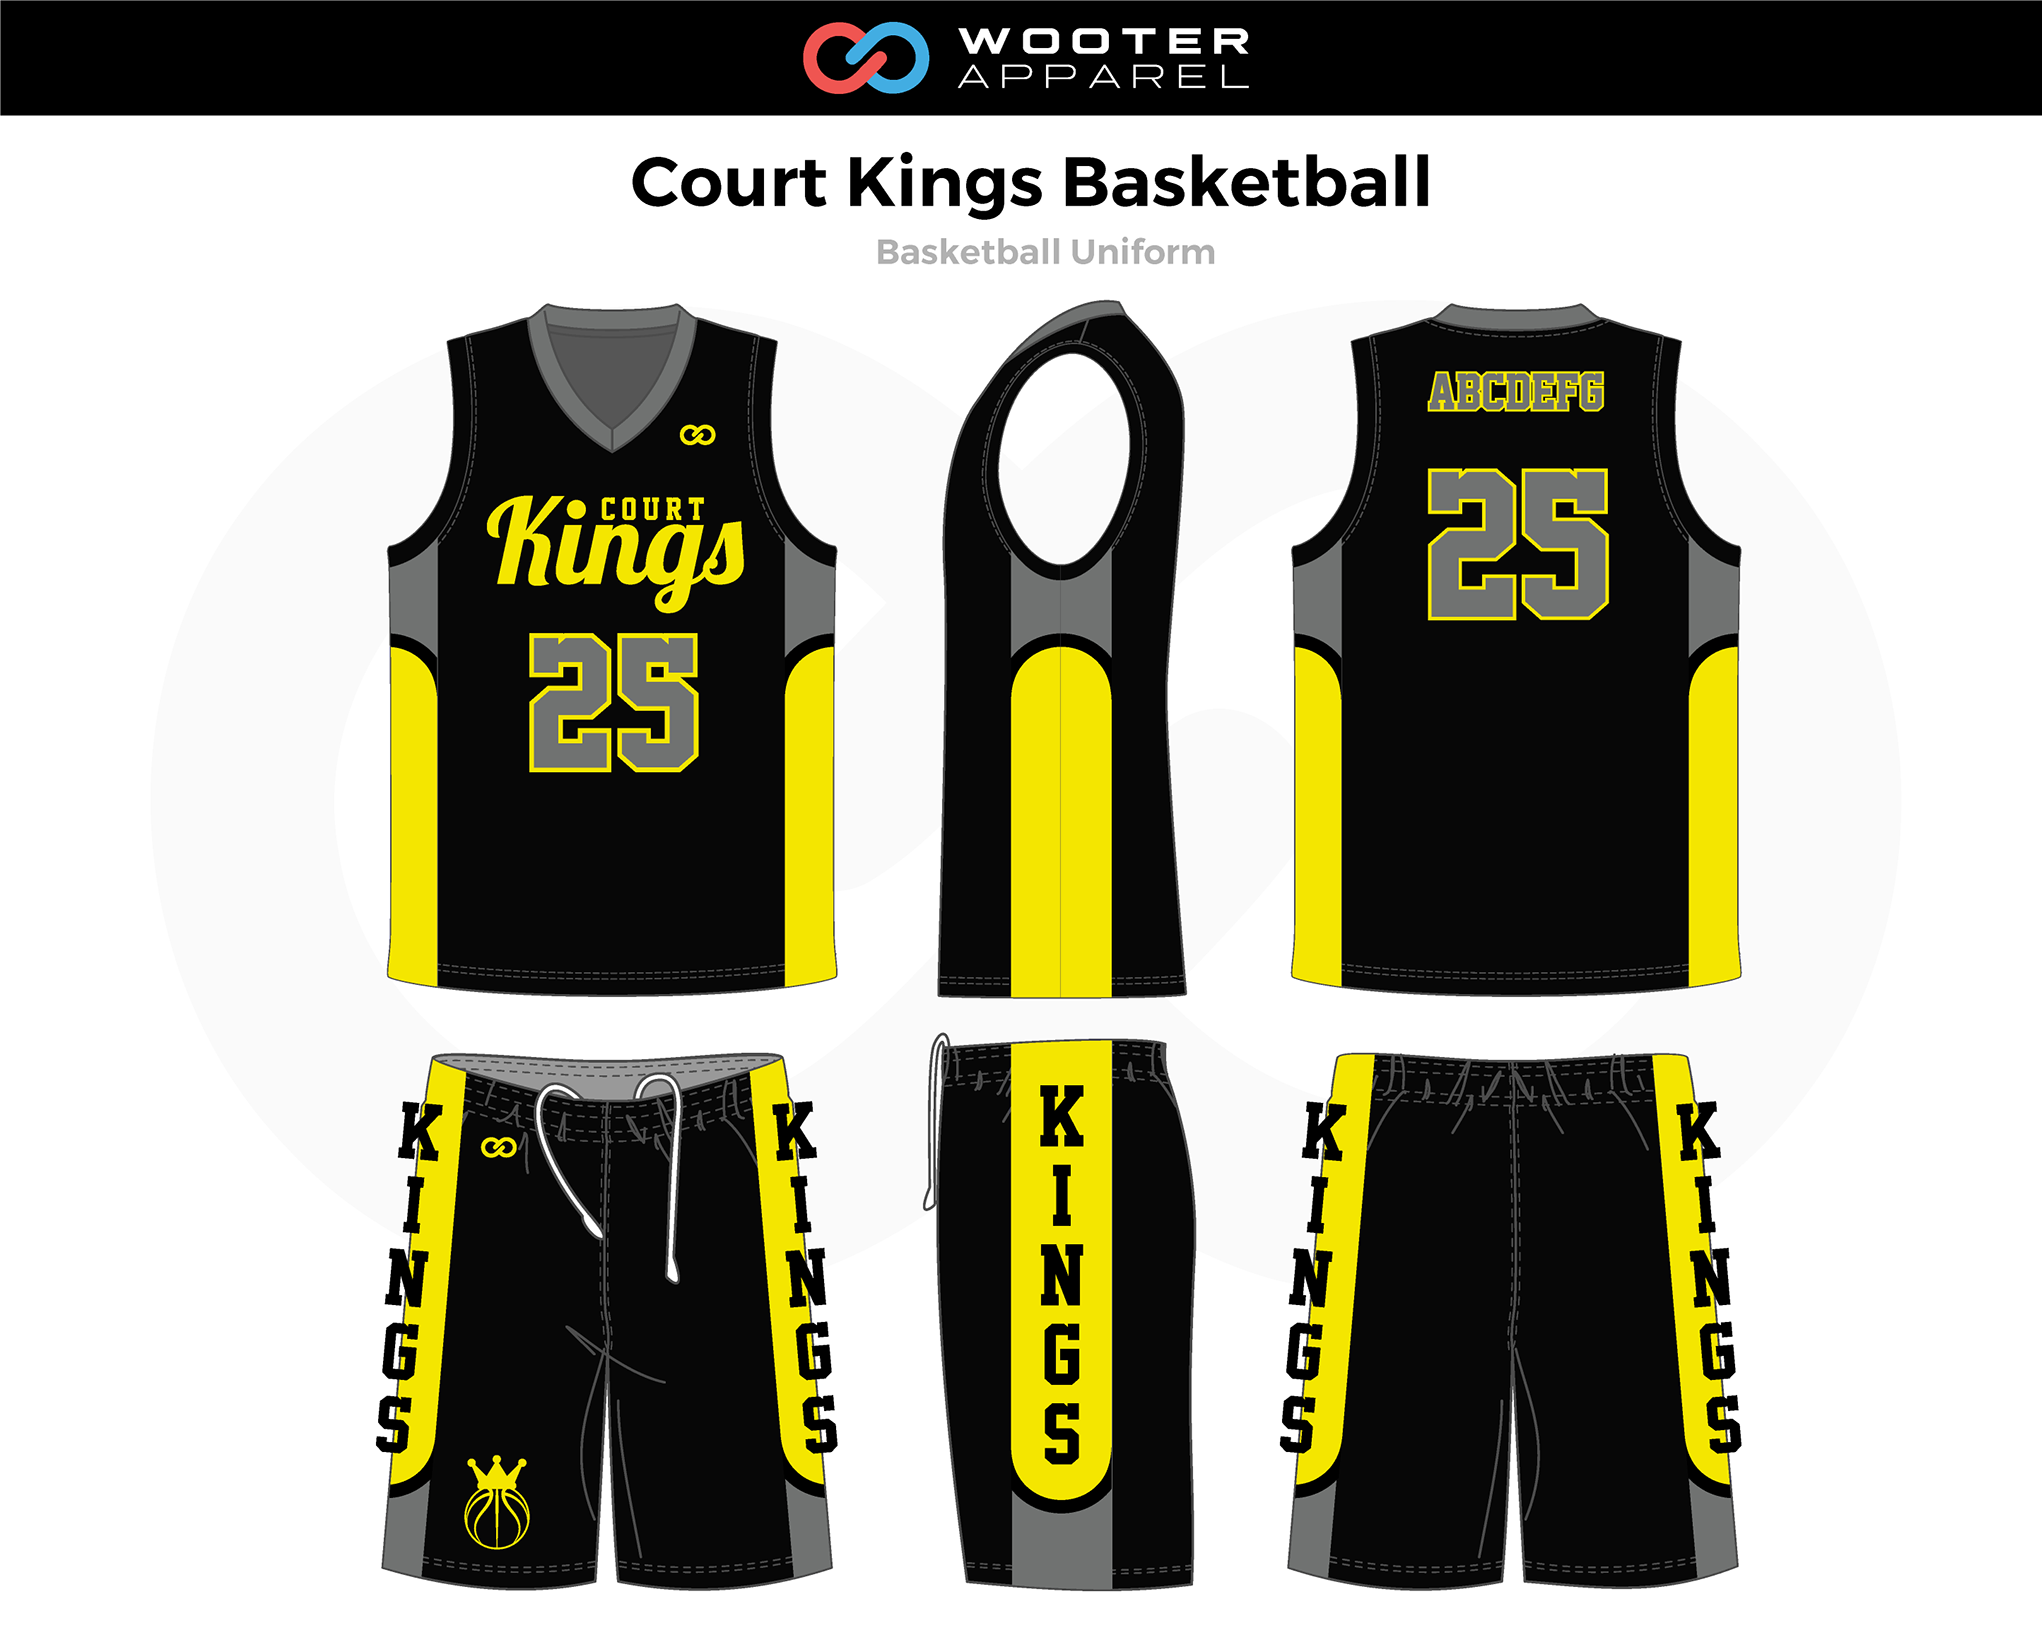 COURT KINGS Black Yellow Gray Basketball Uniform, Jersey and Shorts